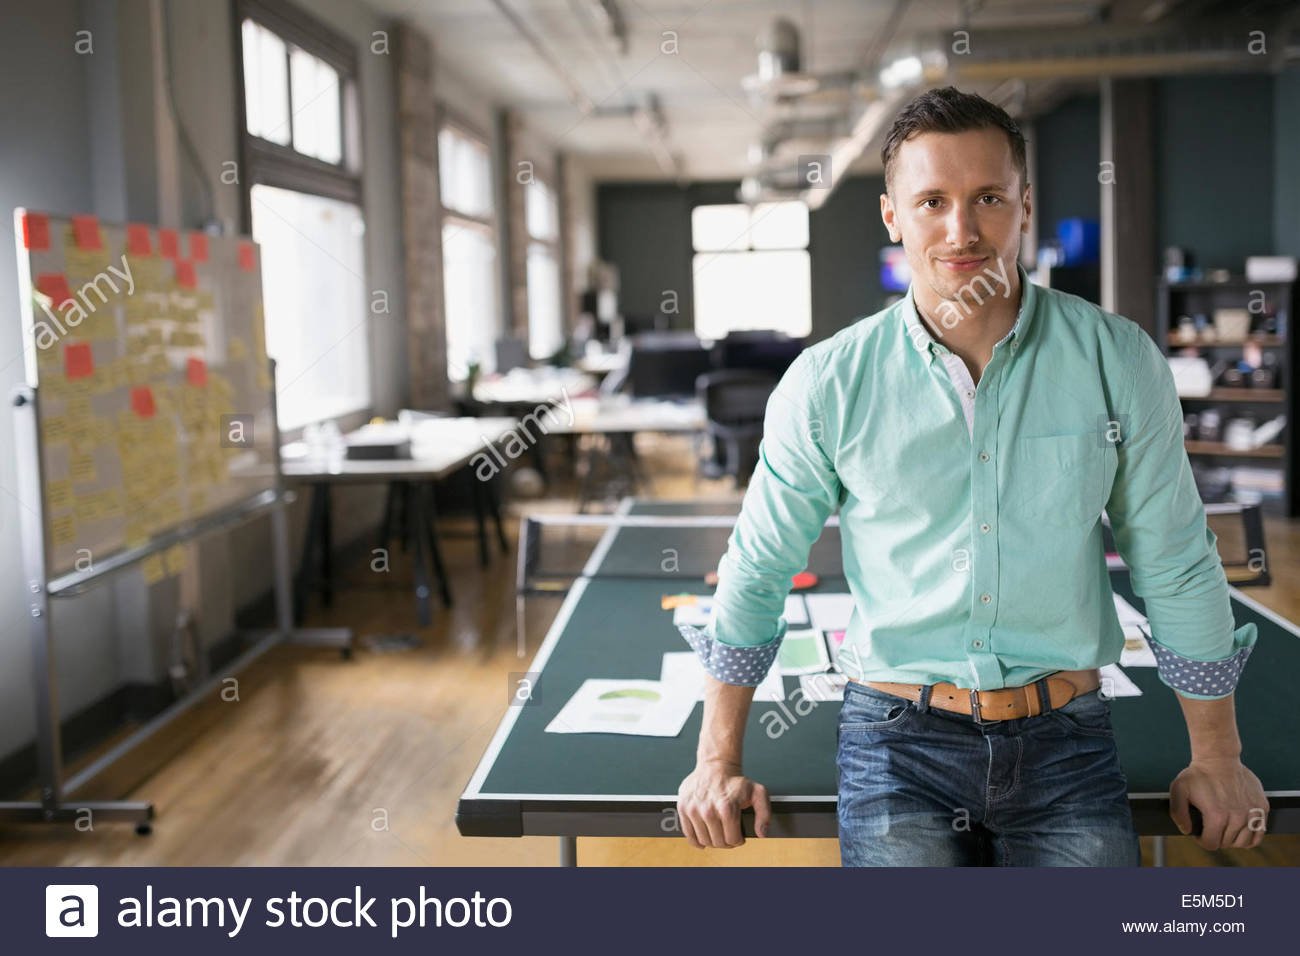 Creative businessman leaning on ping pong table - Stock Image